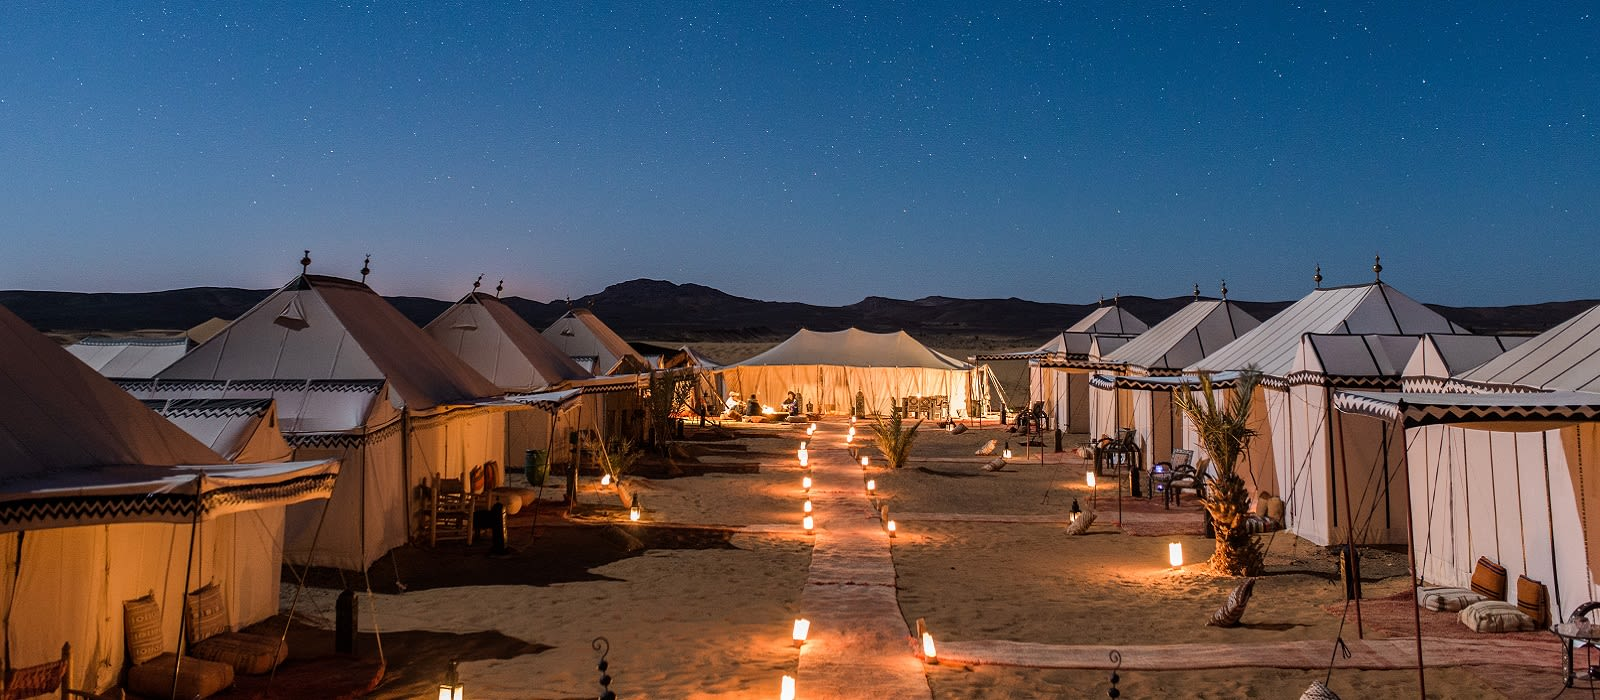 Hotel Desert Luxury Camp Marokko